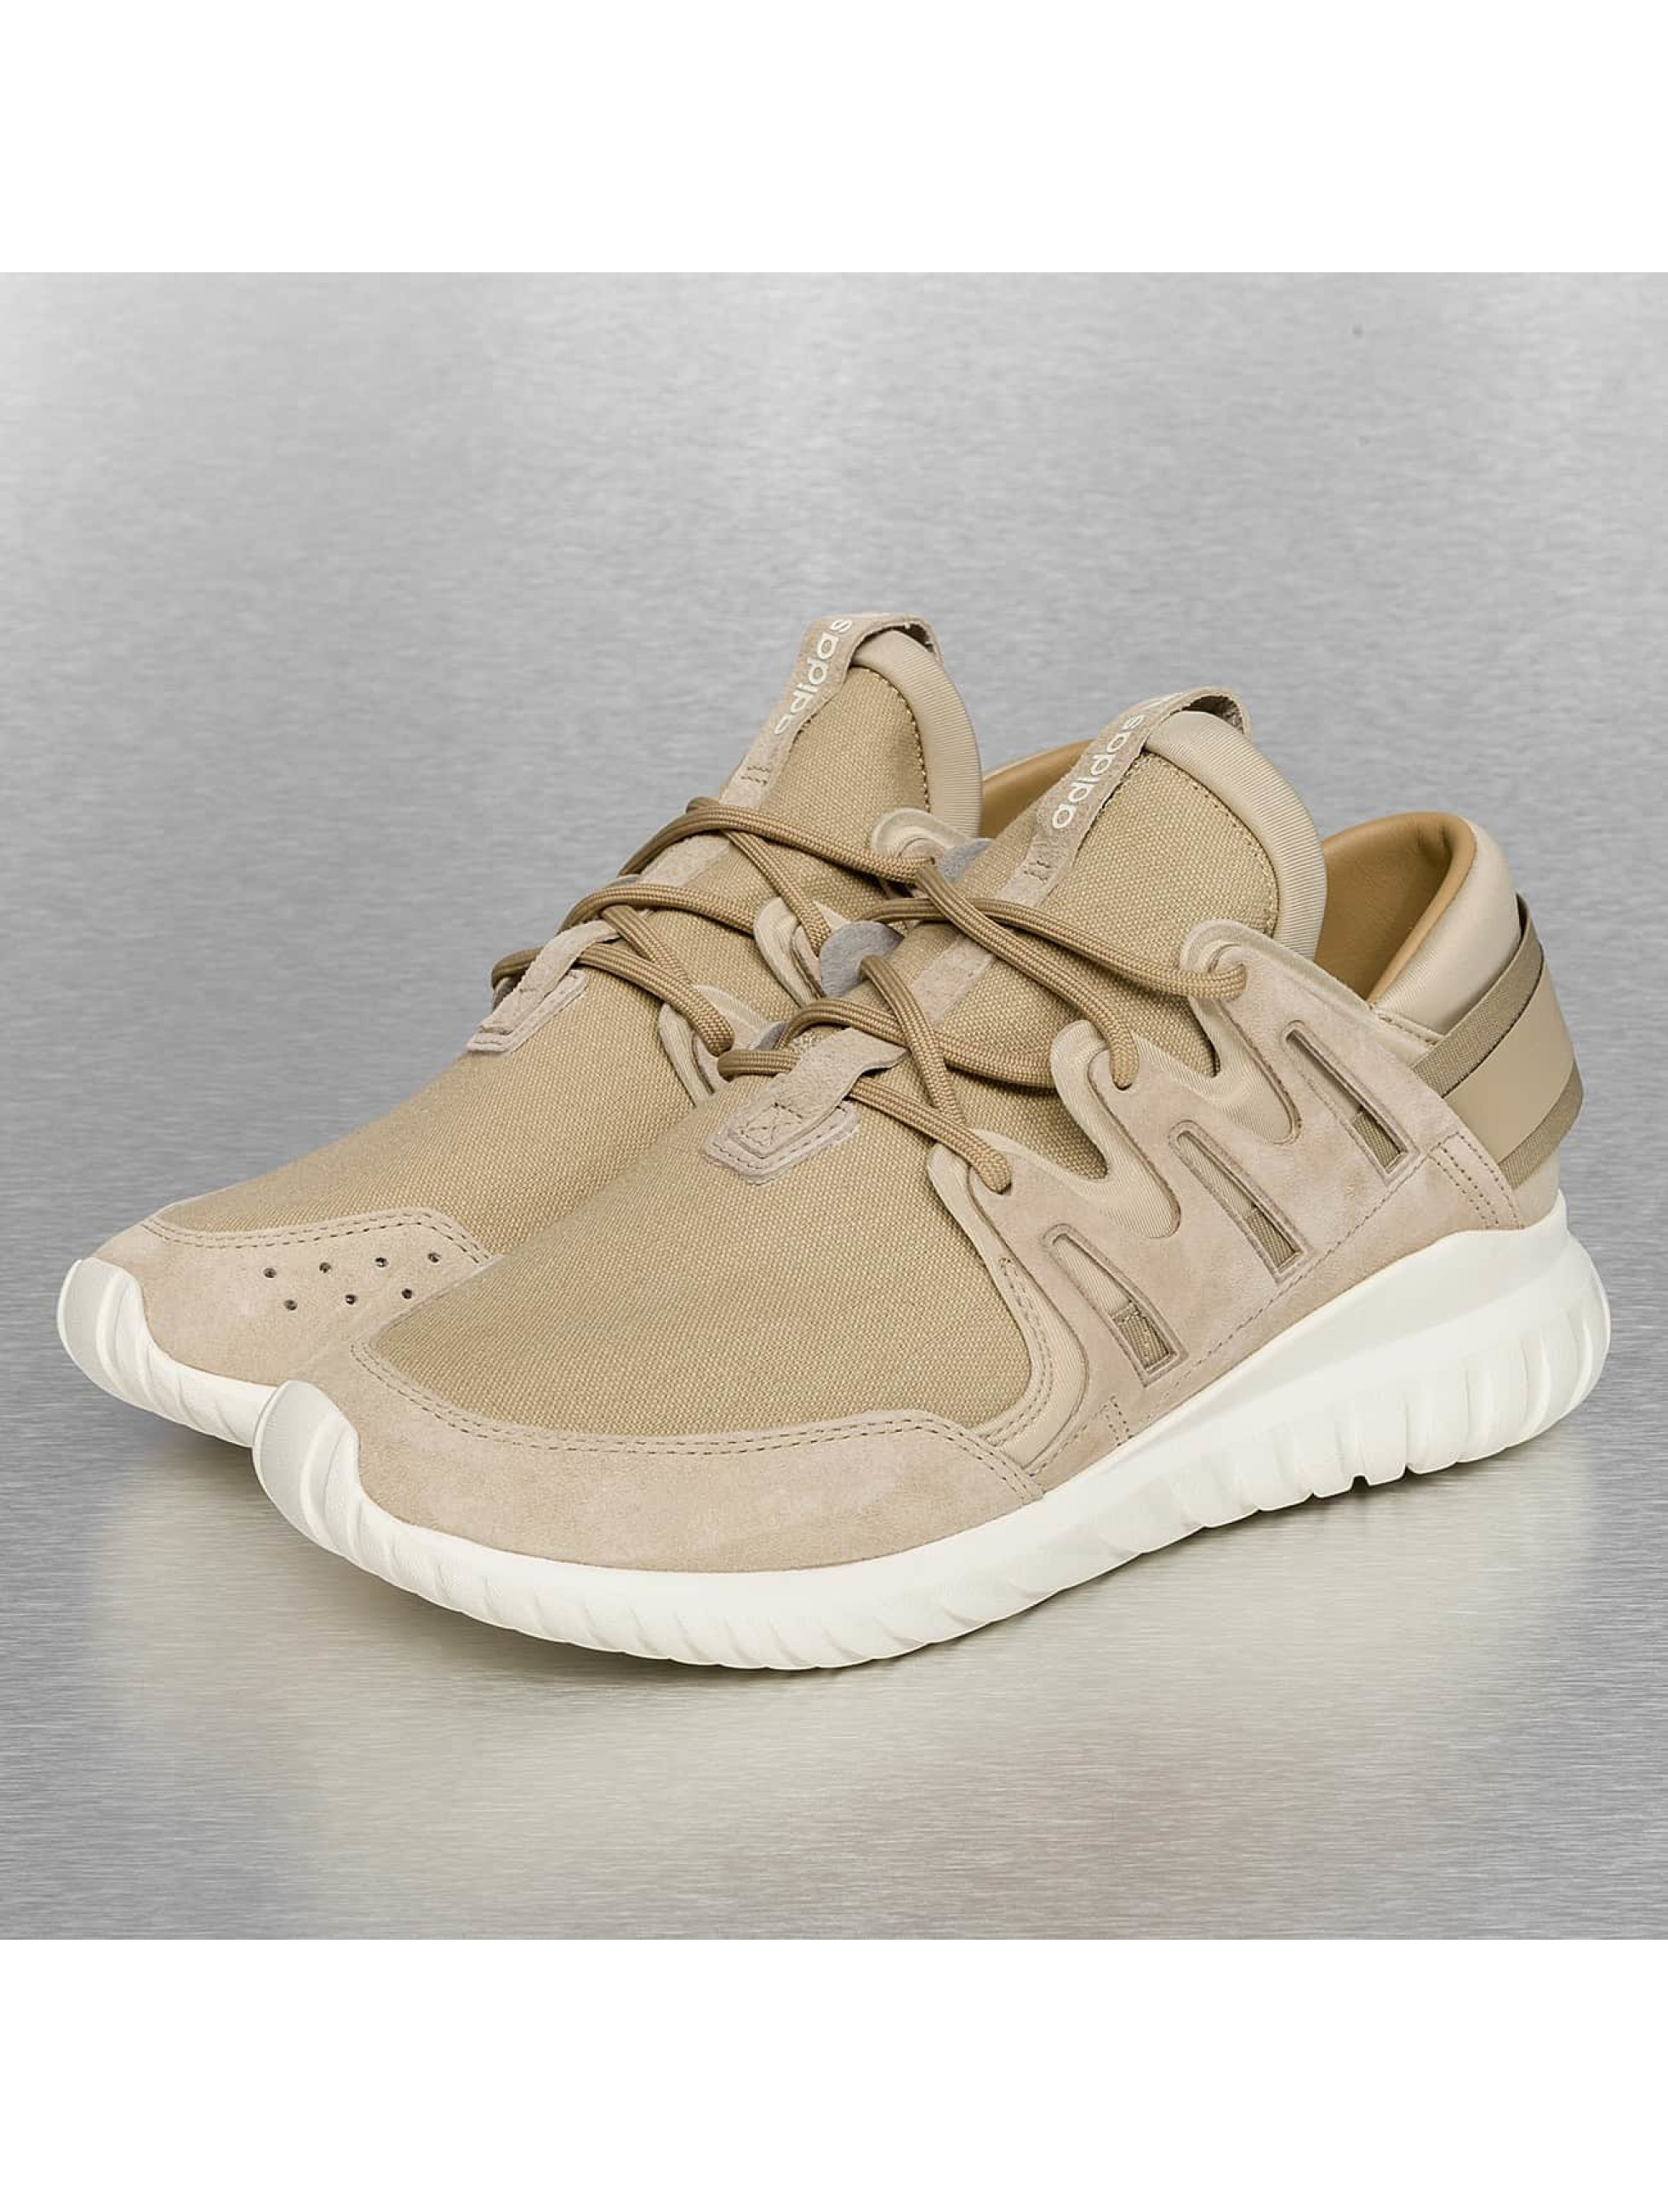 adidas tubular nova beige. Black Bedroom Furniture Sets. Home Design Ideas